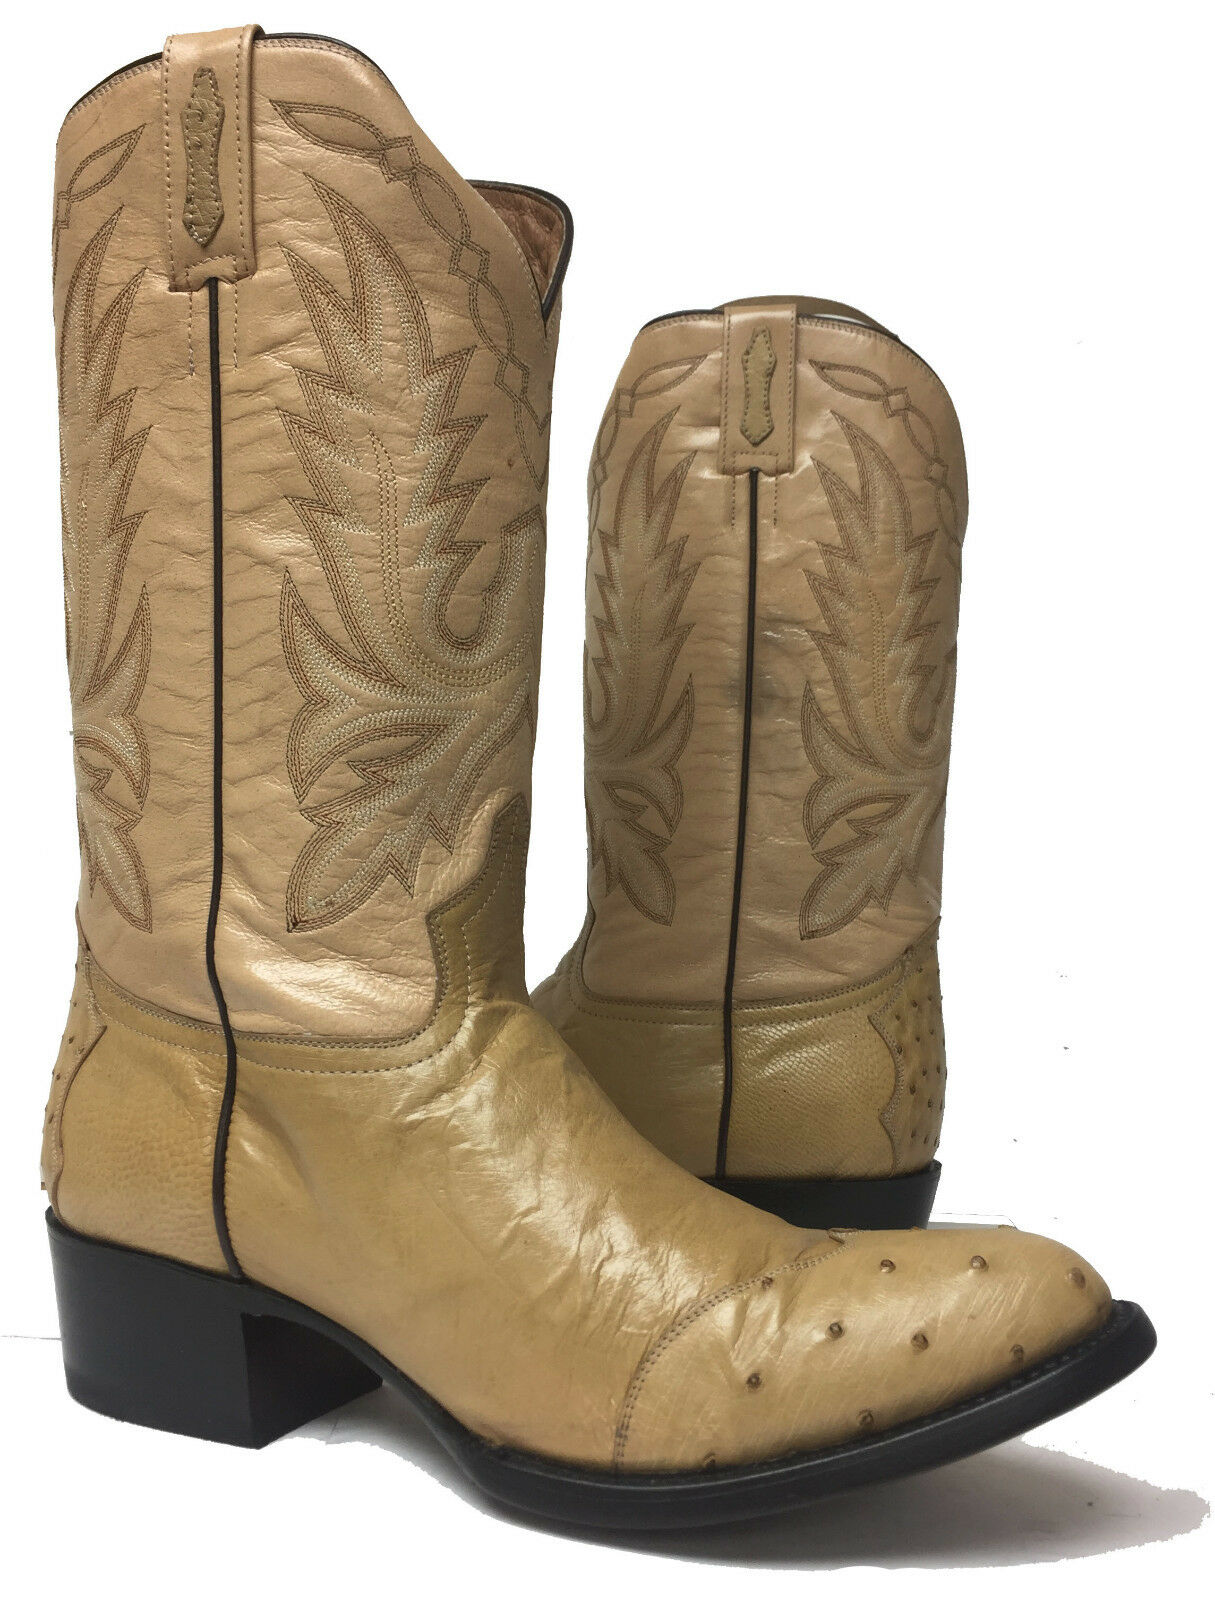 Mens Beige Sand Genuine Real Ostrich Skin Western Leather Cowboy Boots Size 10.5